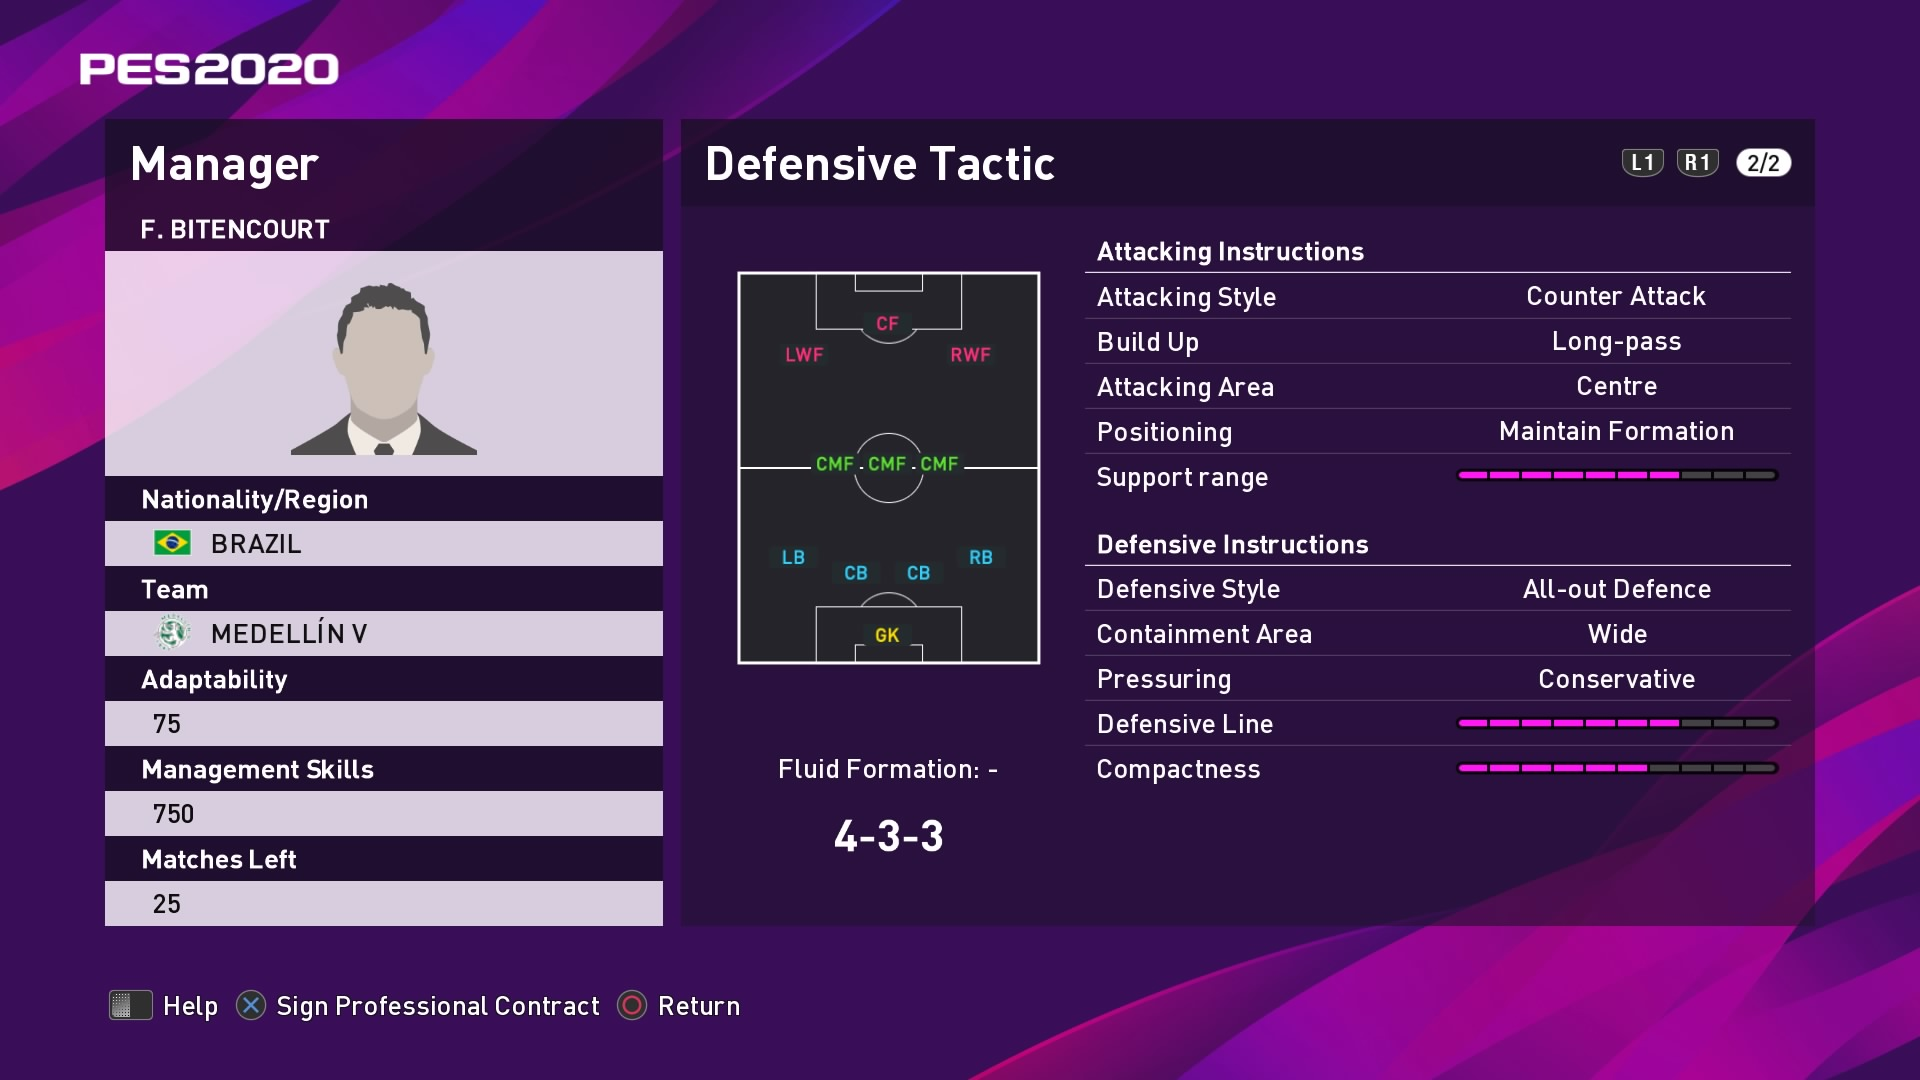 F. Bitencourt (Paulo Autuori) Defensive Tactic in PES 2020 myClub